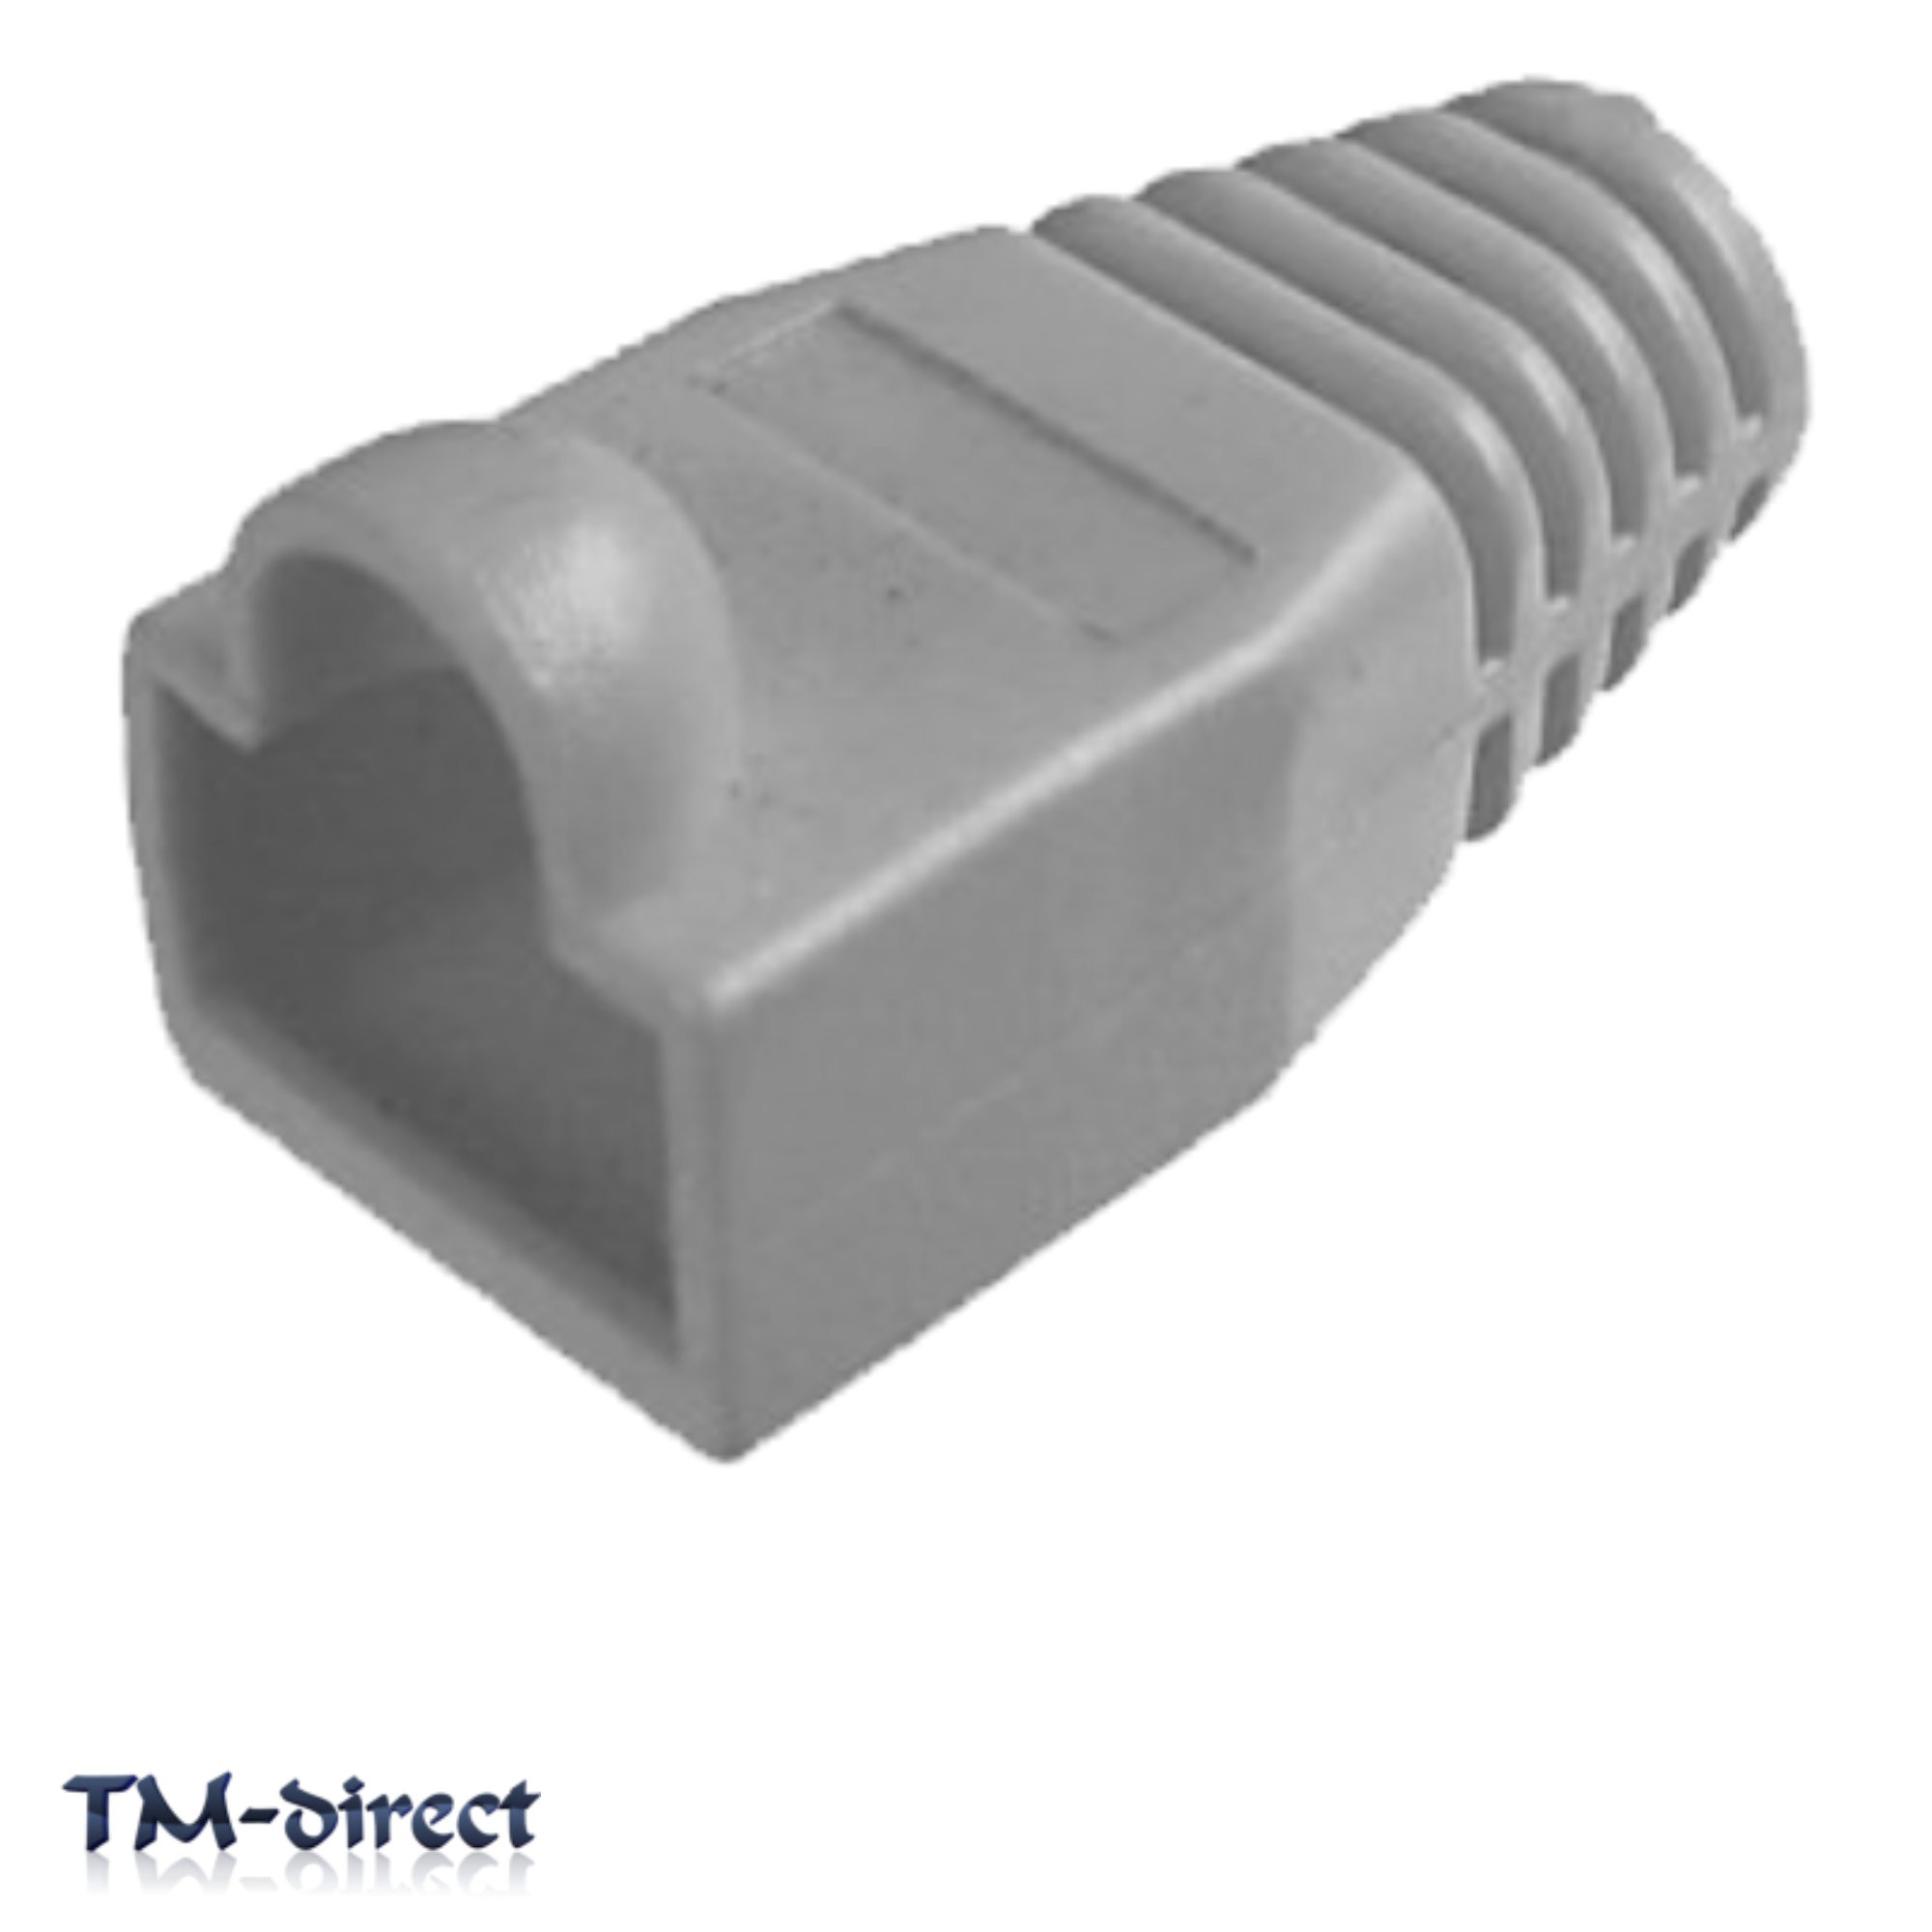 Connector Cover Boots for Cat 5e 6e RJ45 Ethernet Cable Plug Boot Mix Color